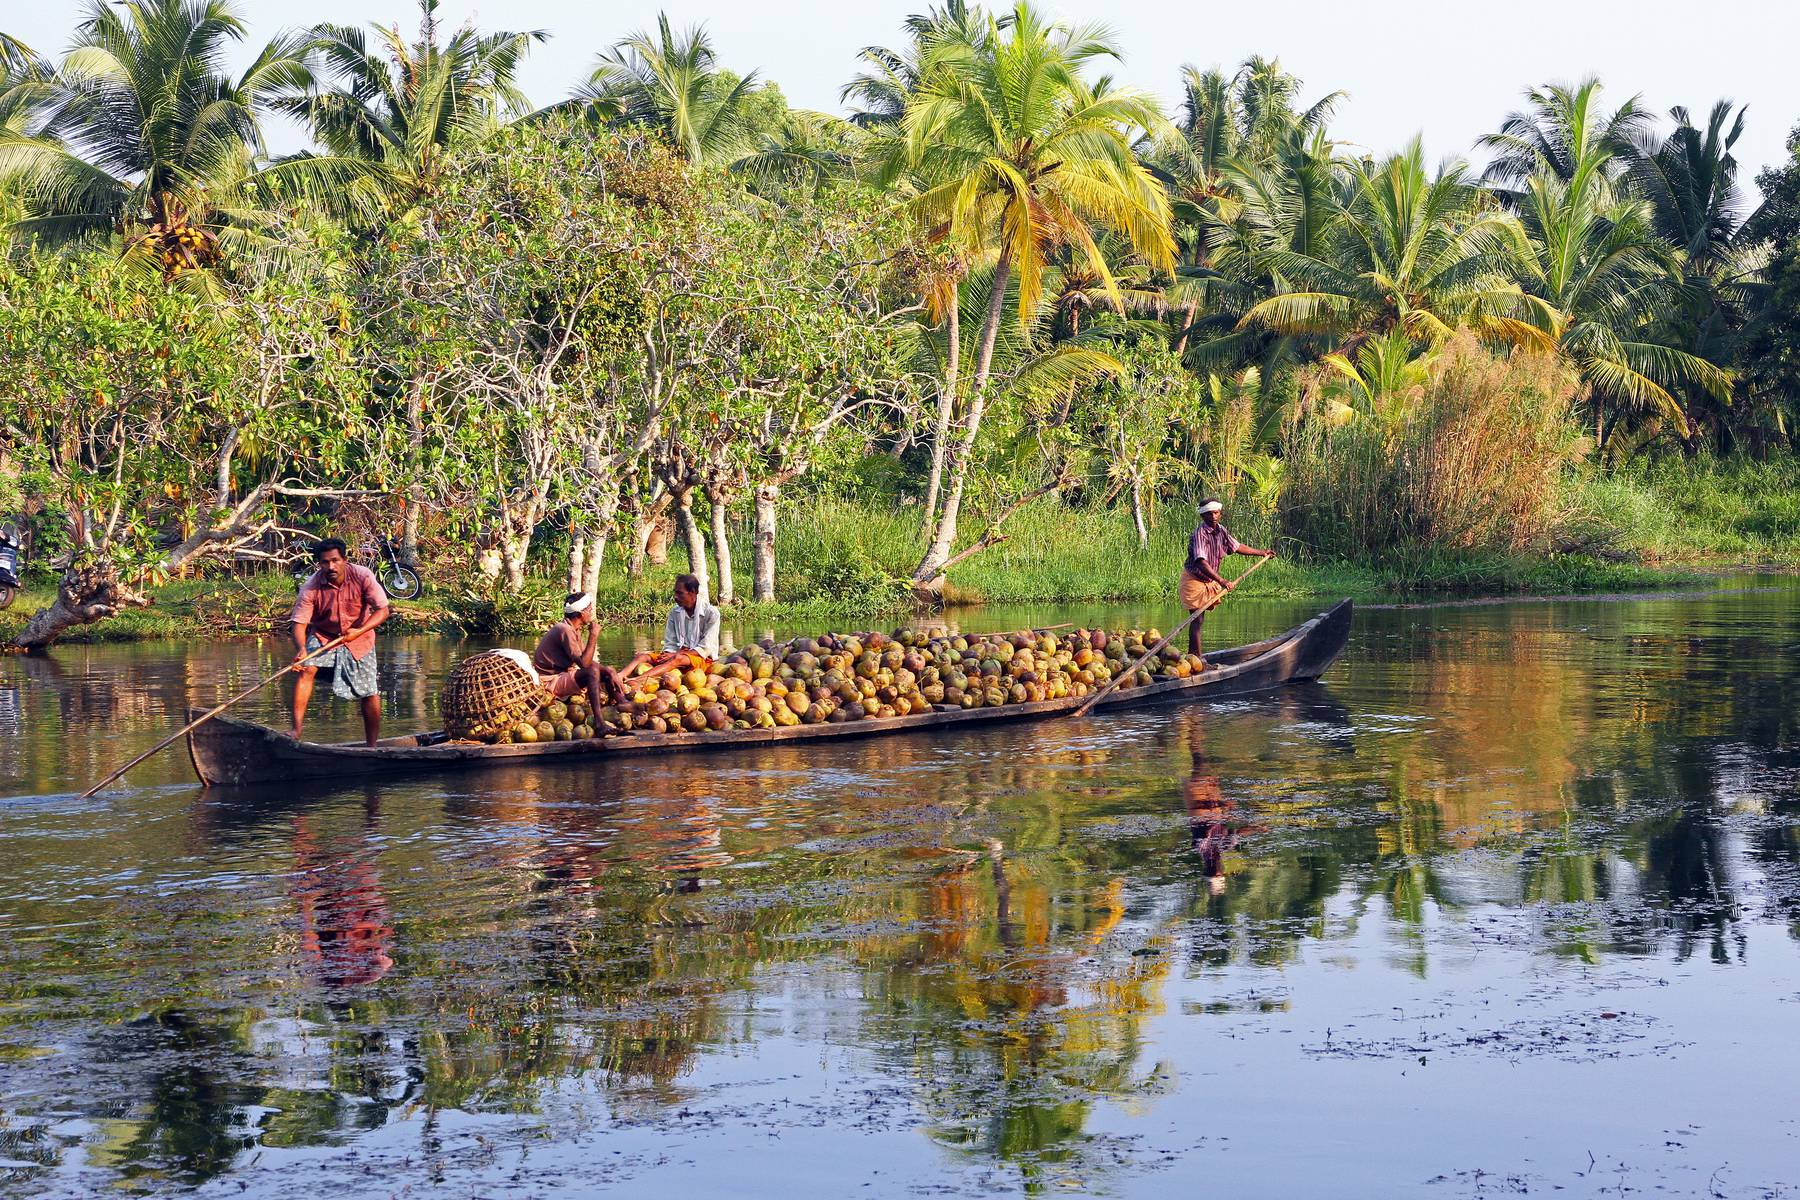 Kokostransport genom Backwaters